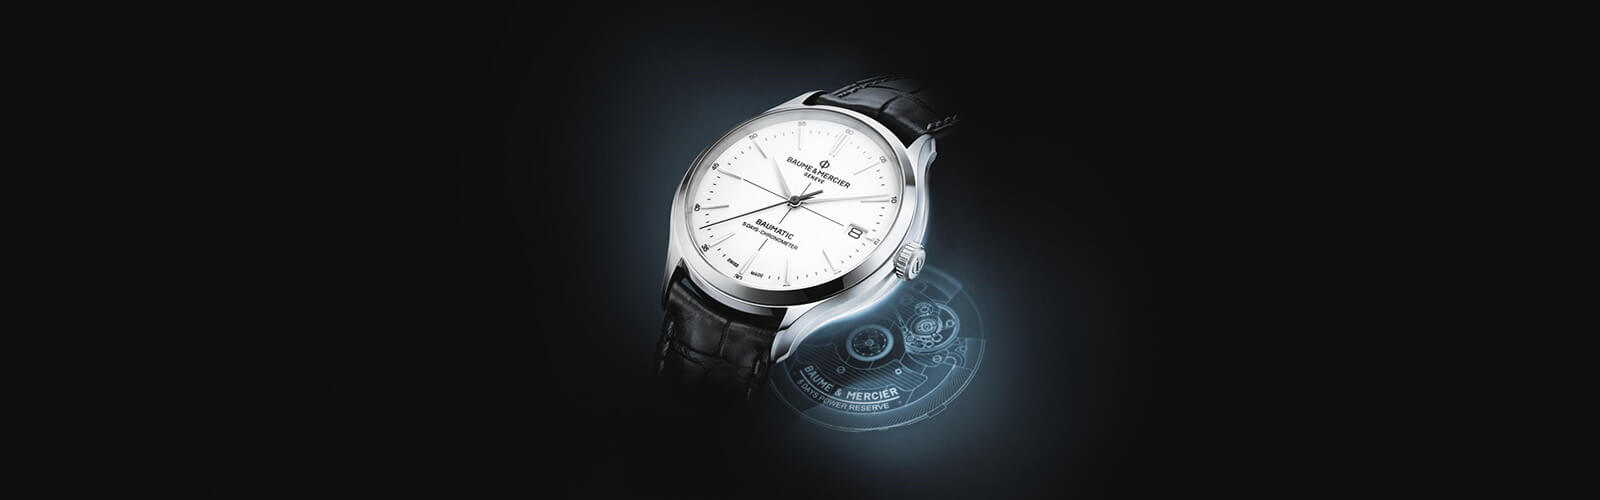 BAUME & MERCIER Clifton Baumatic_COVER1